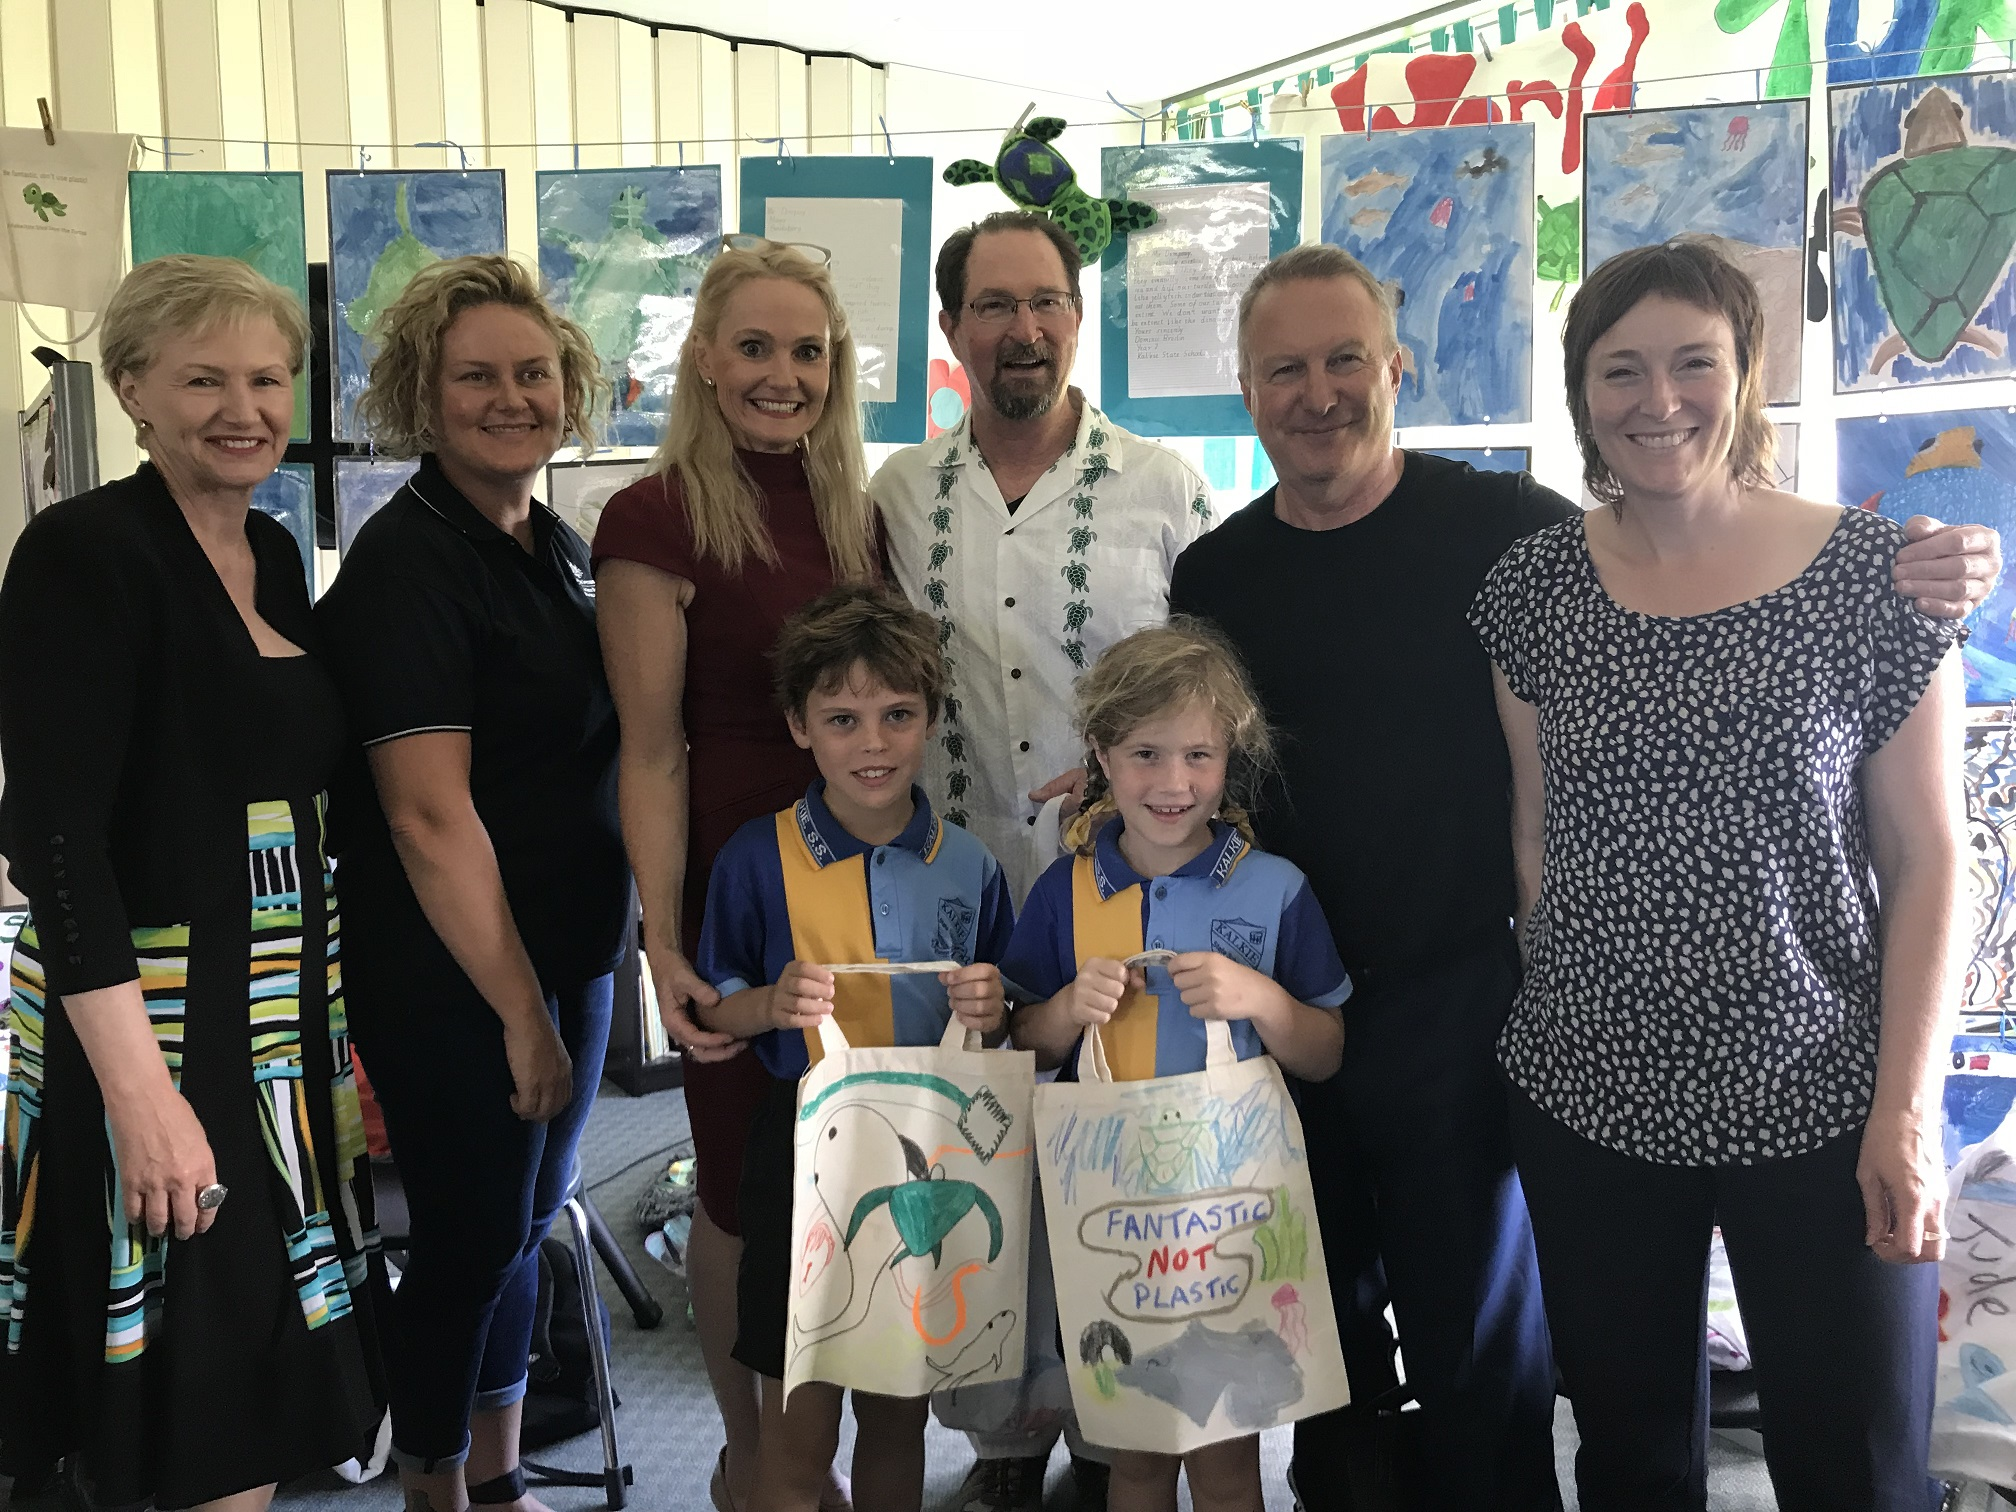 """Fantastic Not Plastic"" cloth bags made by Kalkie State School students"